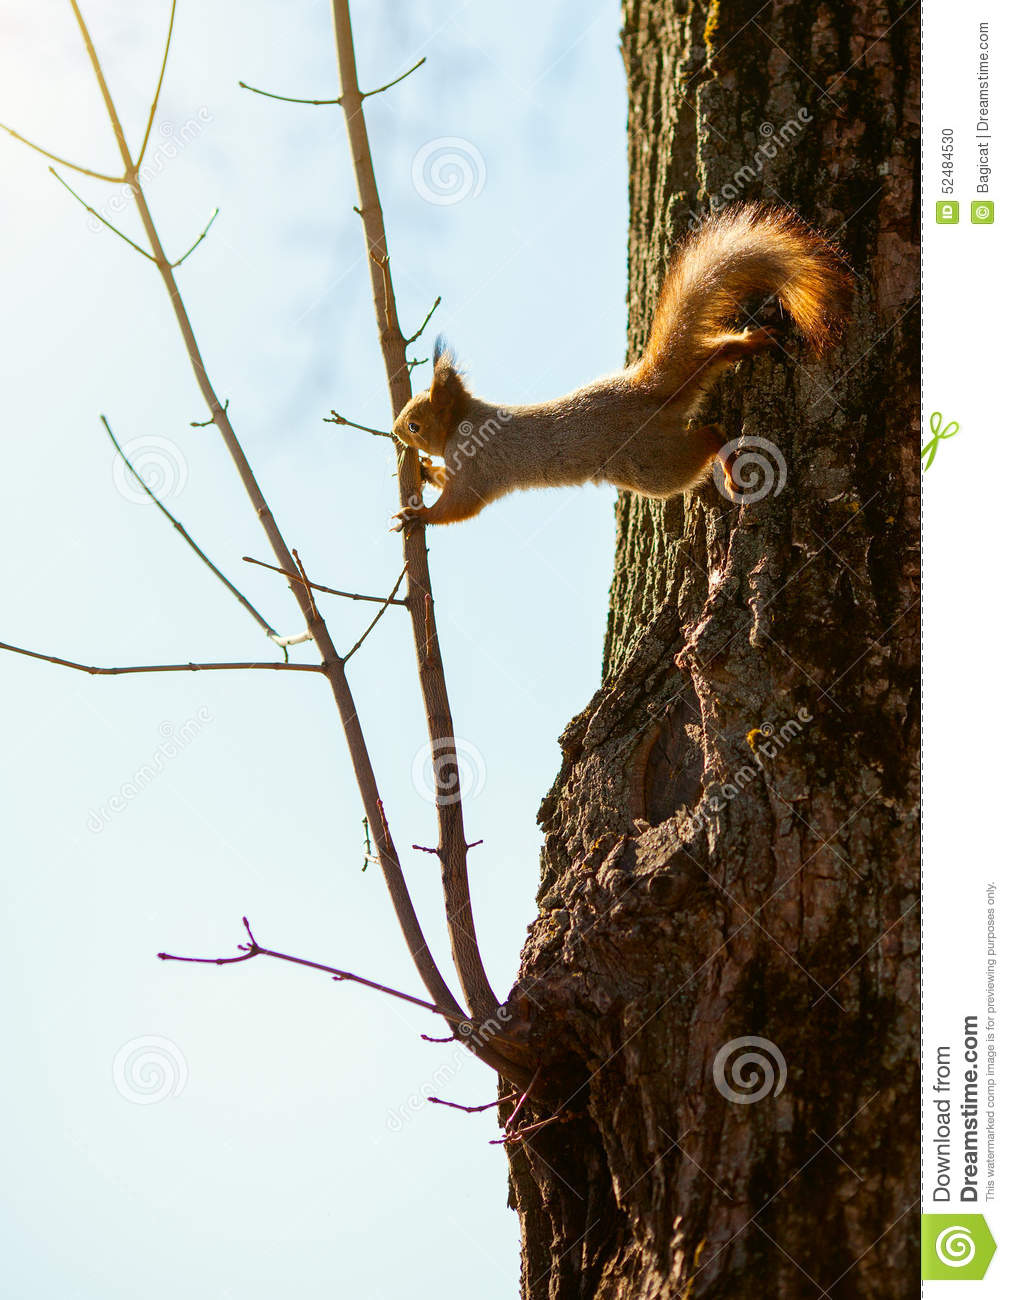 squirrel and tree relationship